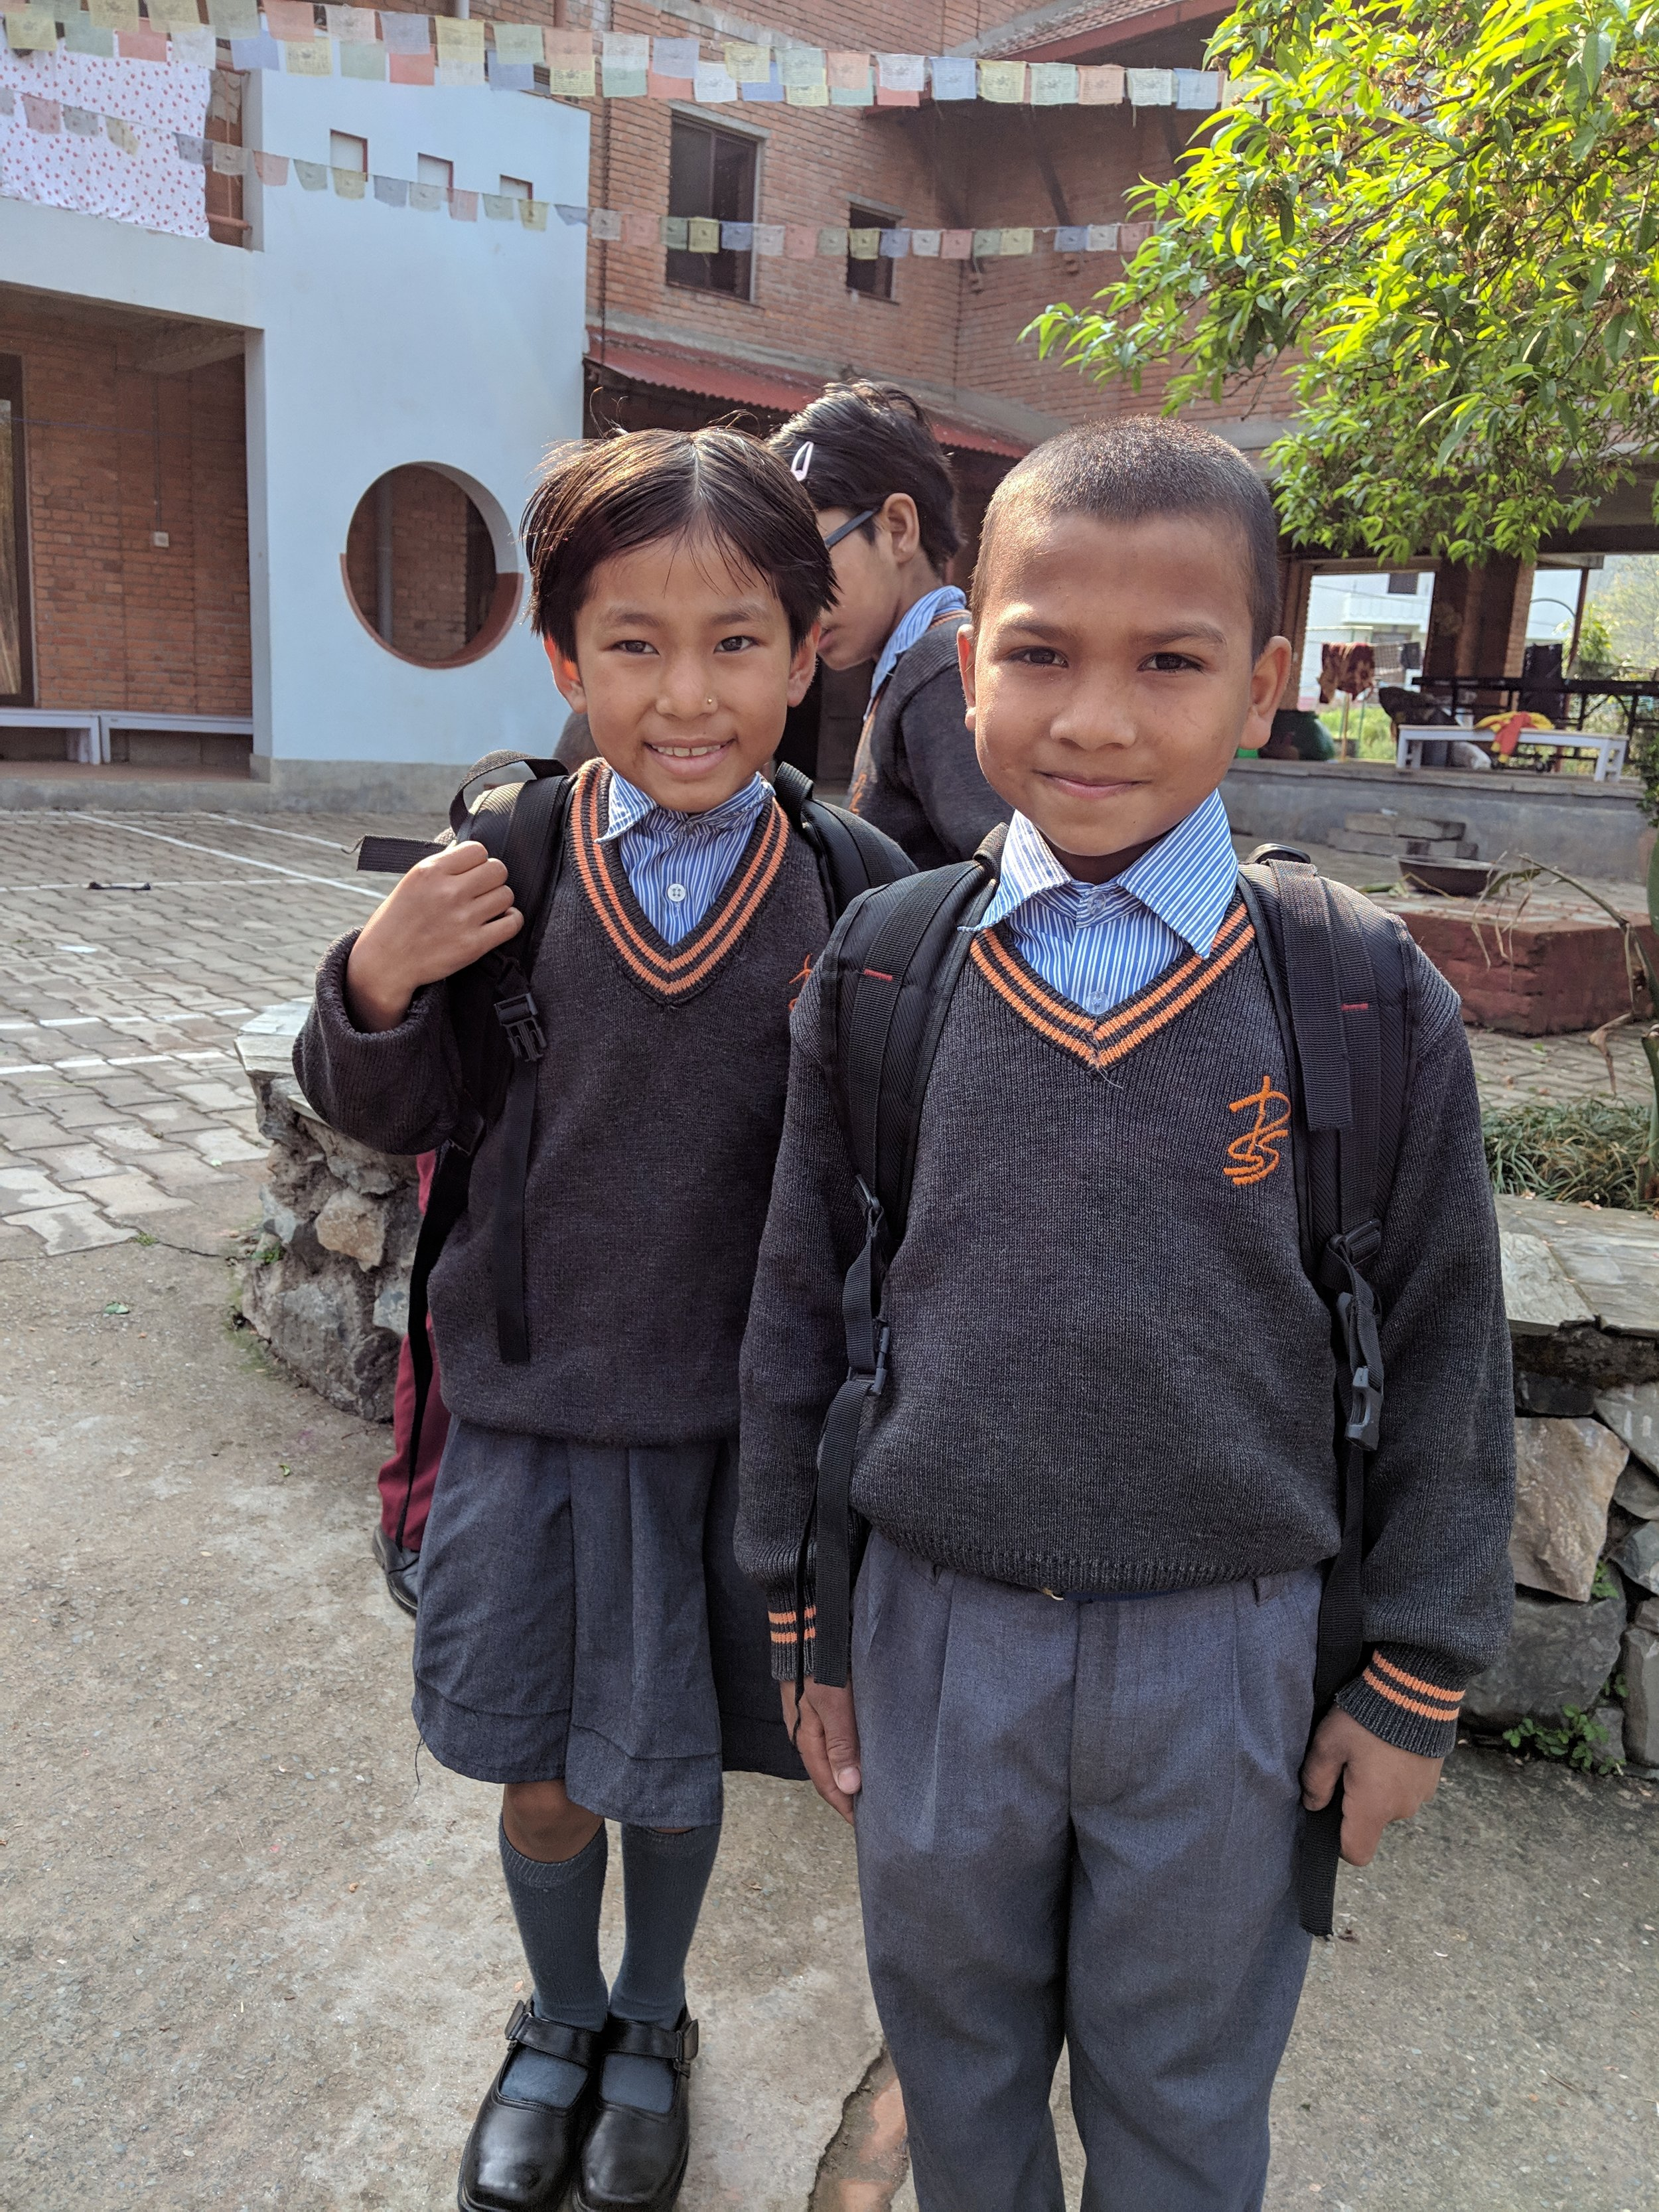 Two of the kids in their school uniforms.